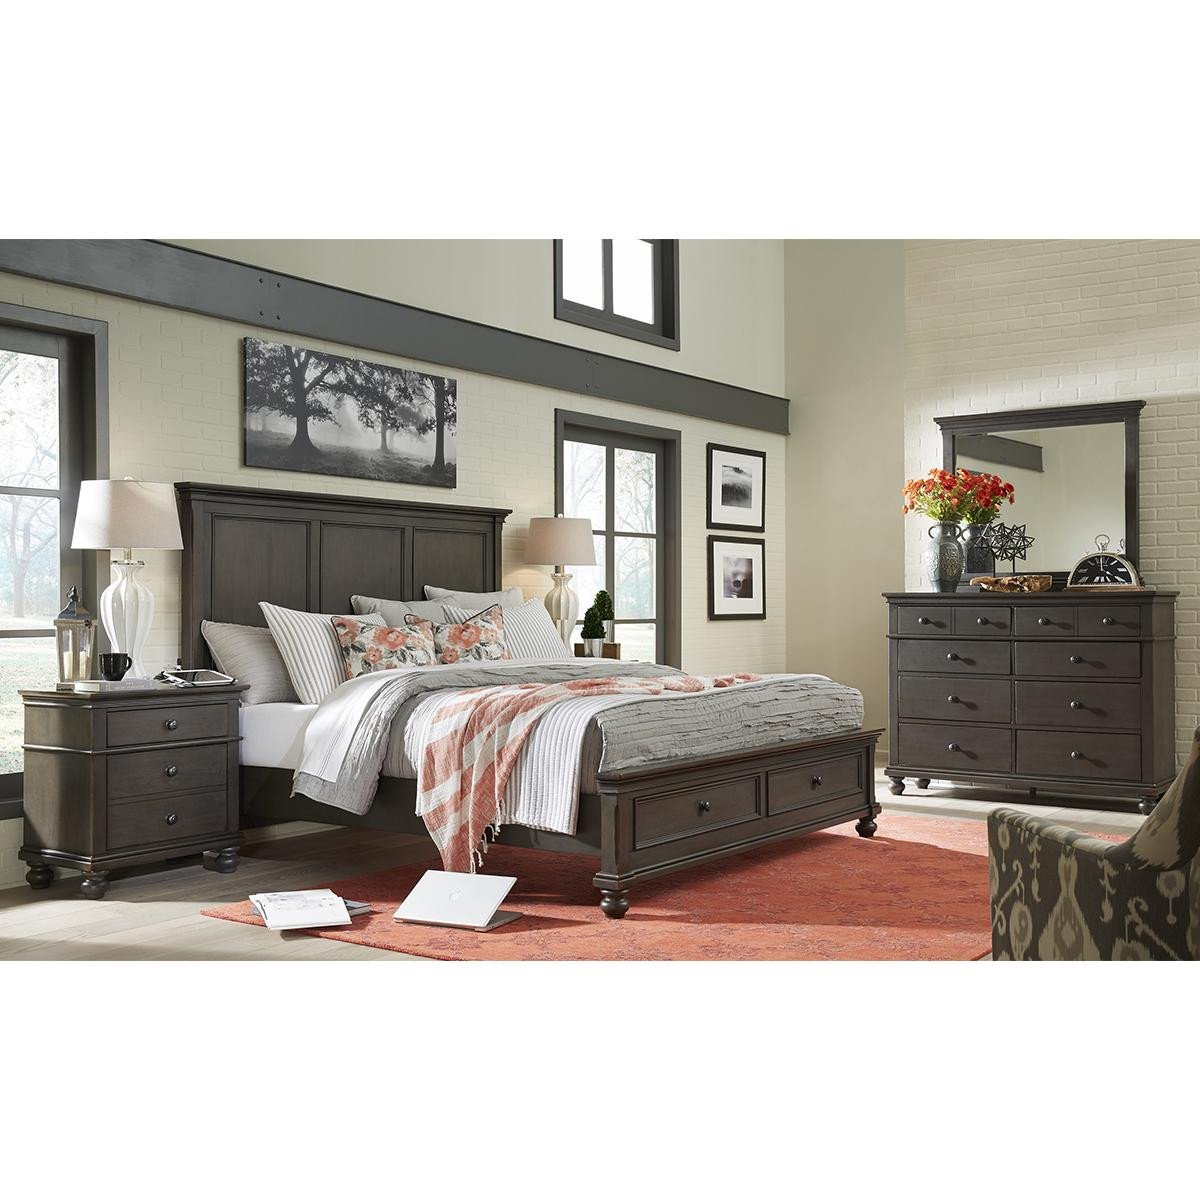 King Size Bedroom Set with Mattress New Riva Ridge Oxford 4 Piece King Bedroom Set In Peppercorn